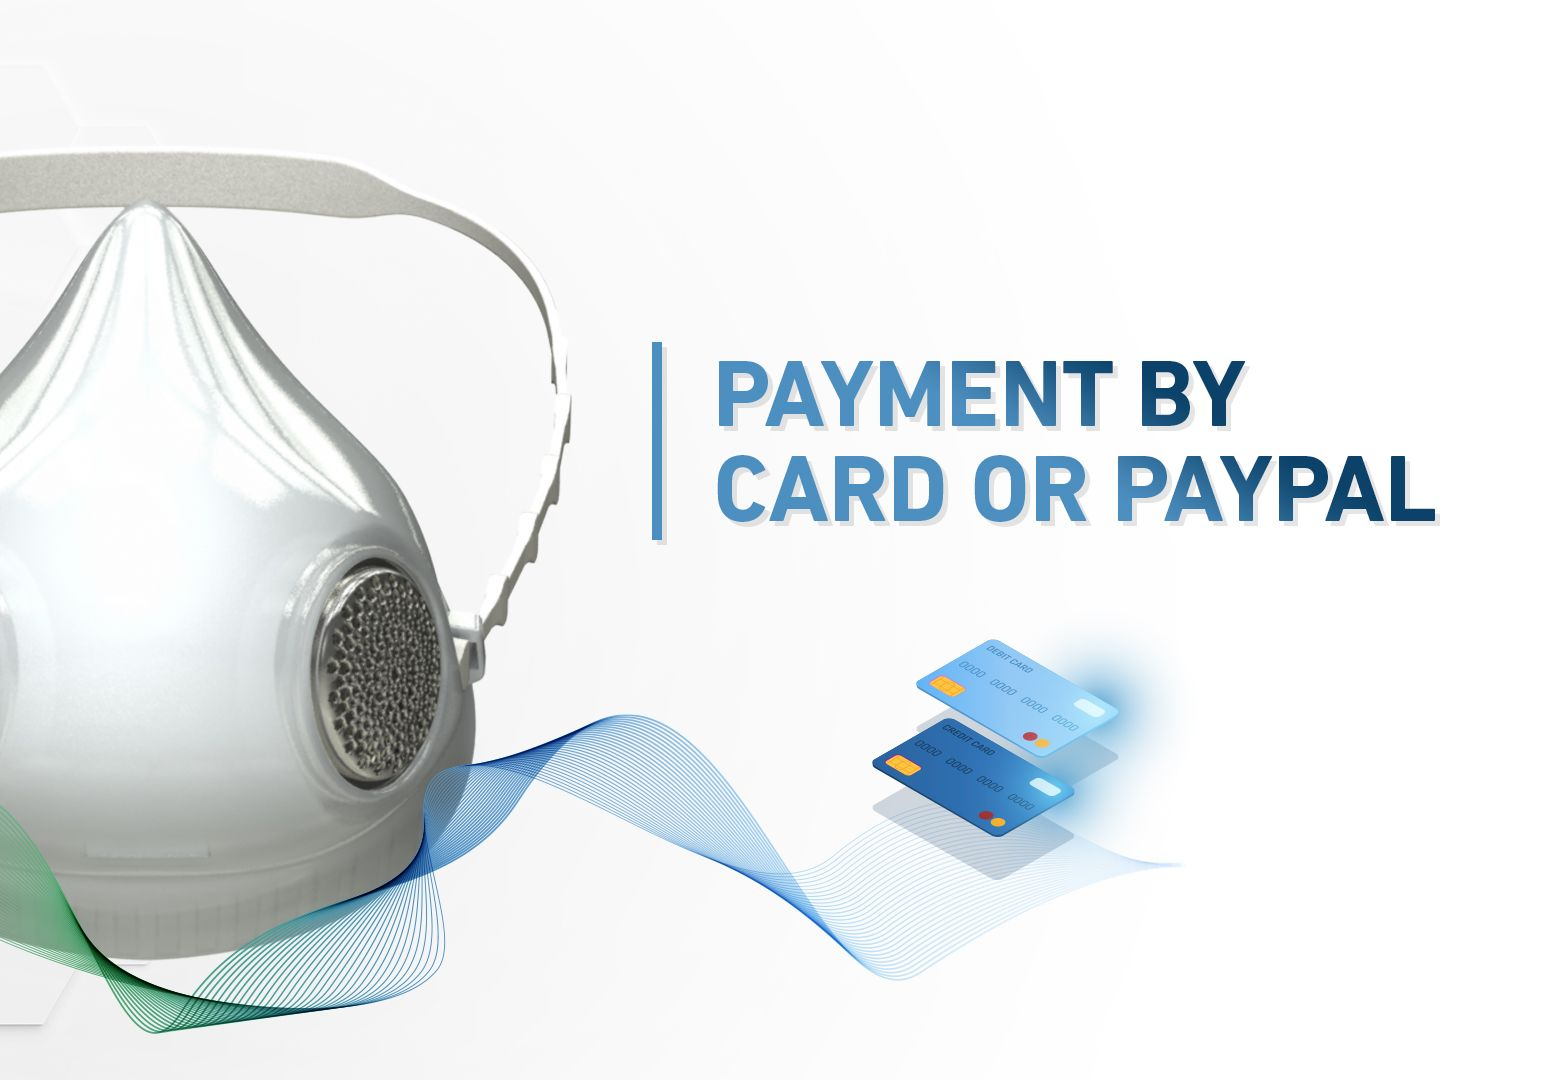 PRECIMASK - Payment by card or Paypal